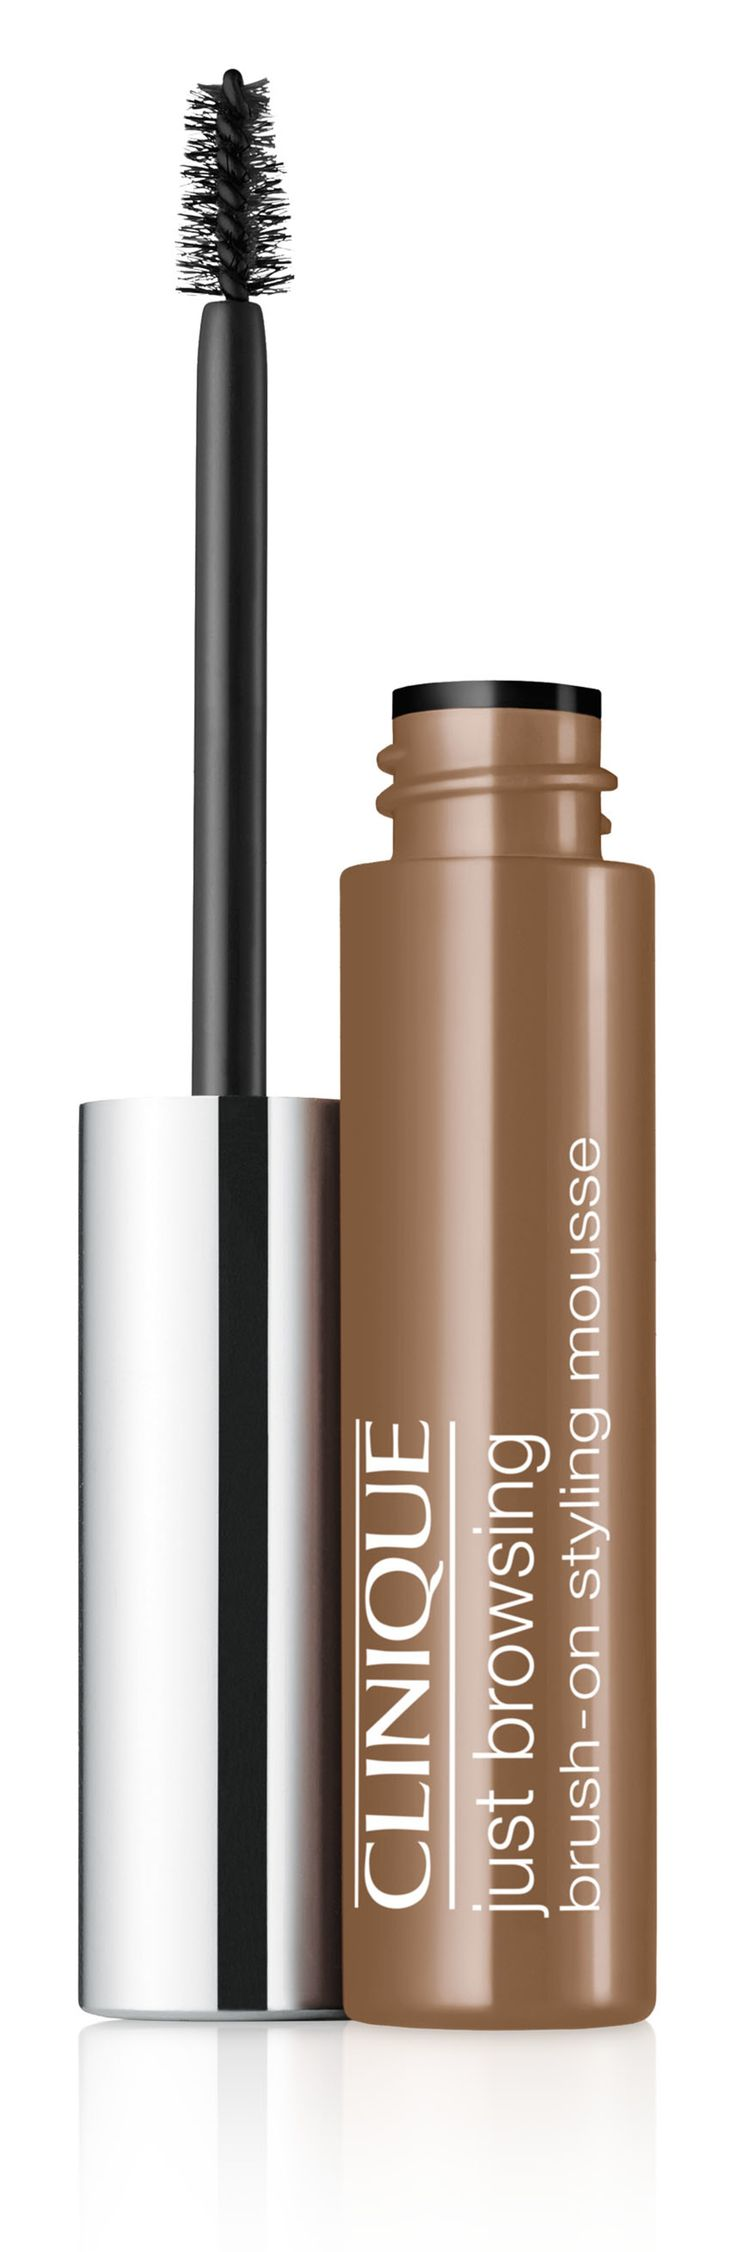 Fall Makeup Trend: Bold Brows. Get the look with Clinique Just Browsing Brush-On Styling Mousse in Light Brown. 24-hour long-wearing brow mousse tints, tames, fills-in even the sparsest brows.